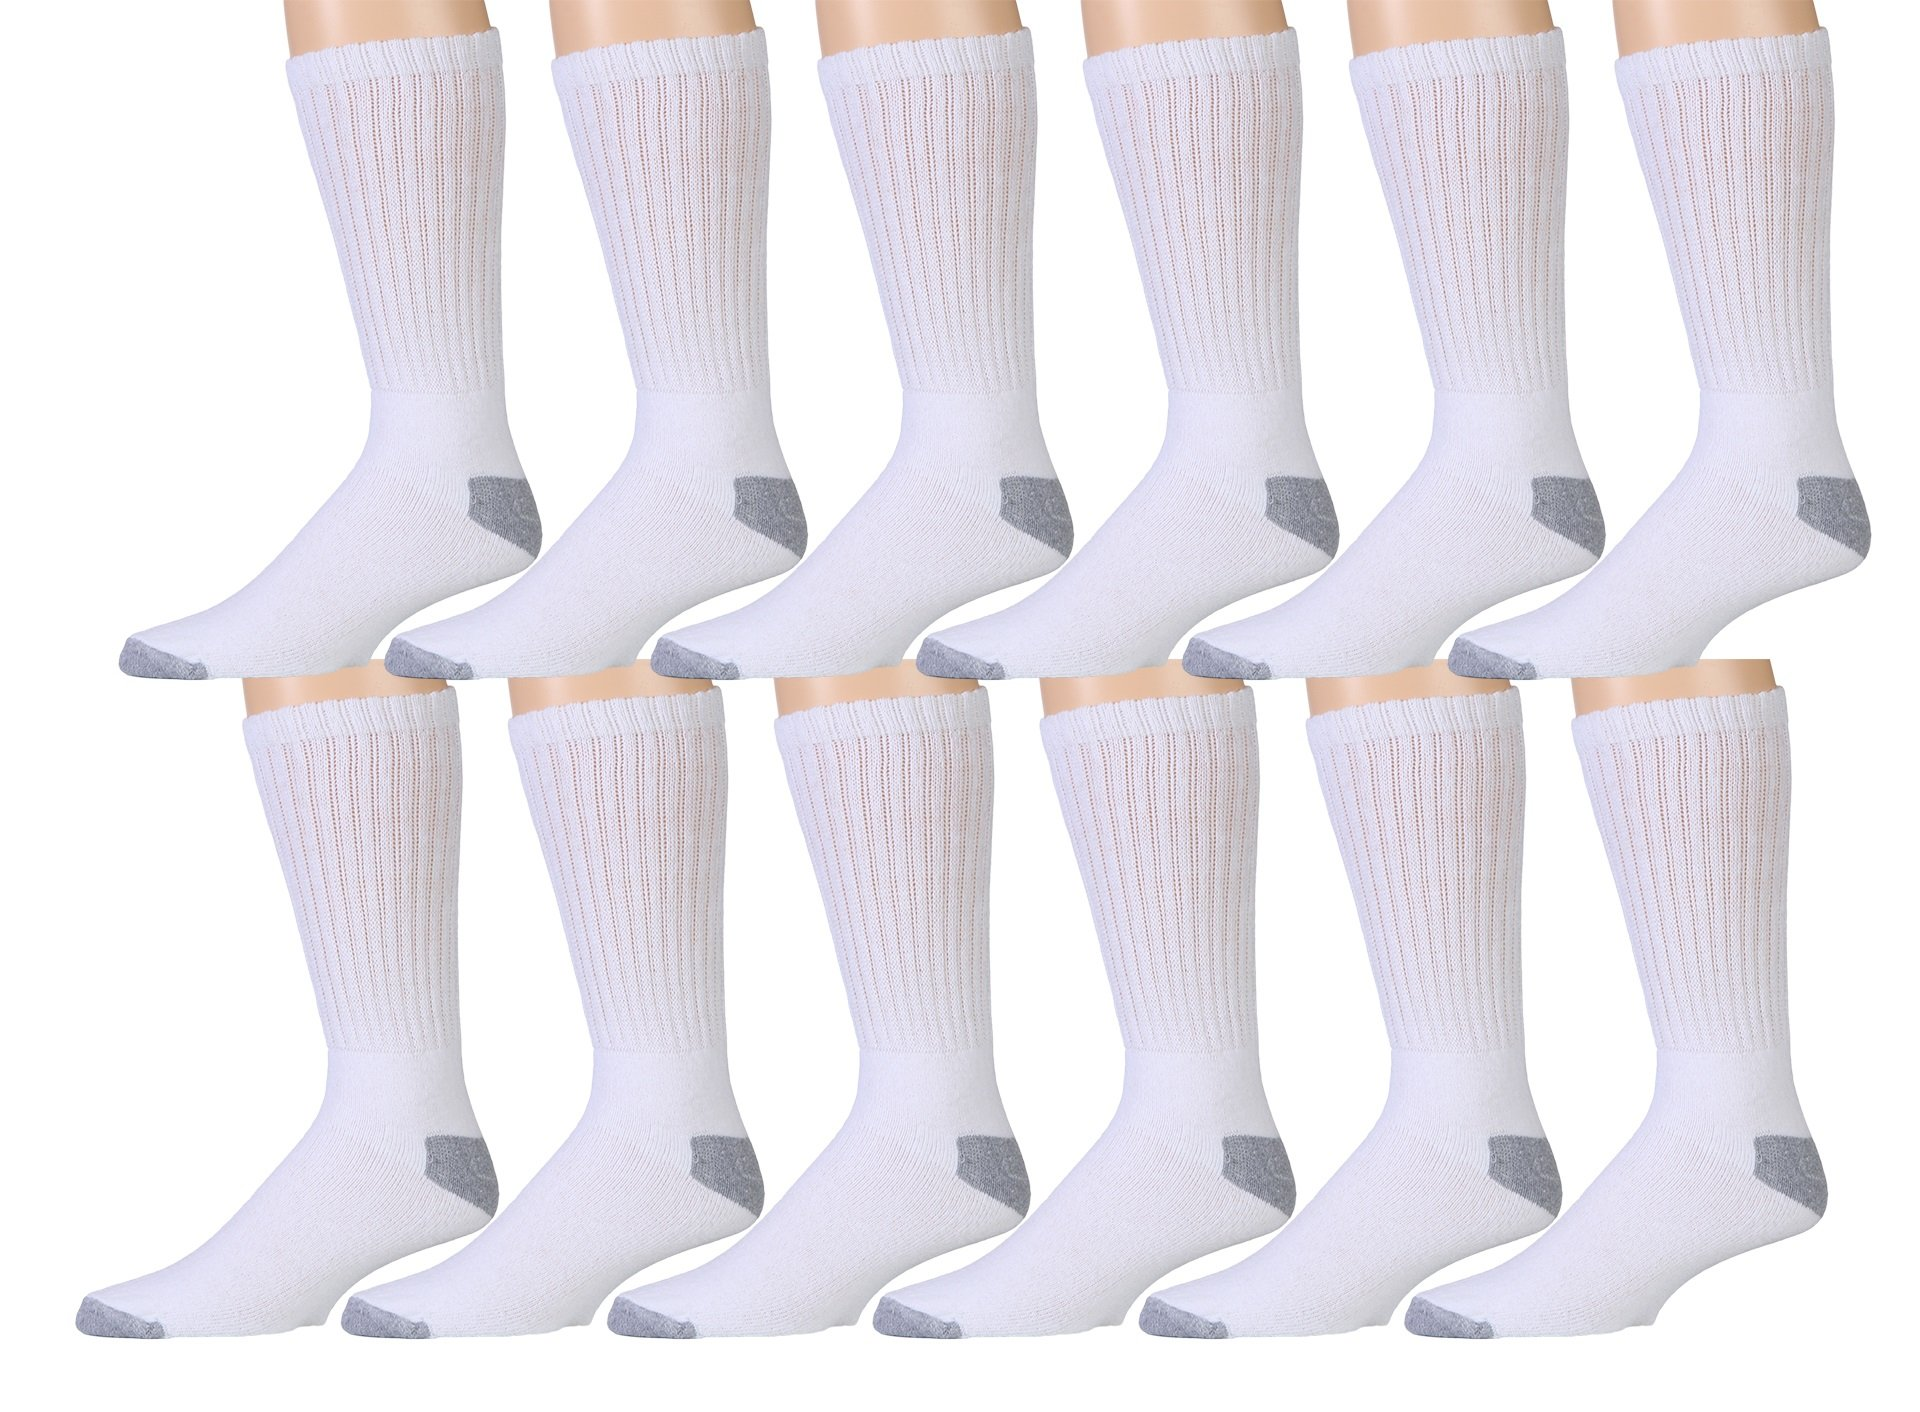 12 Pair Pack Of Mens Cotton Sport Crew Socks, Value Pack By WSD Brands